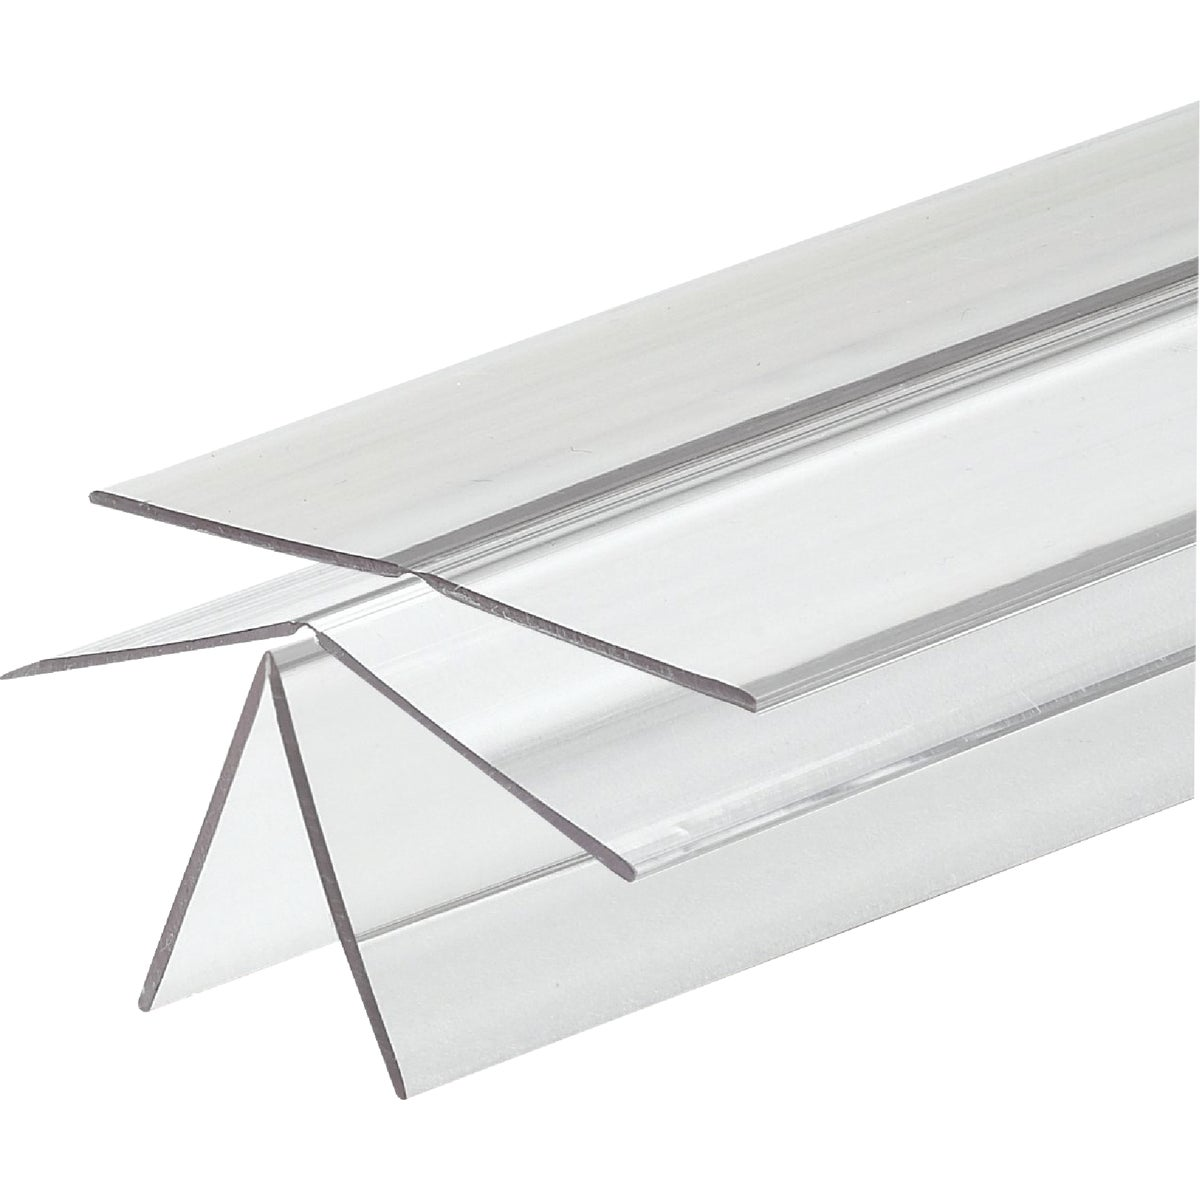 4' CLR UNIV CORNERGUARD - U4100SS by Wall Protex